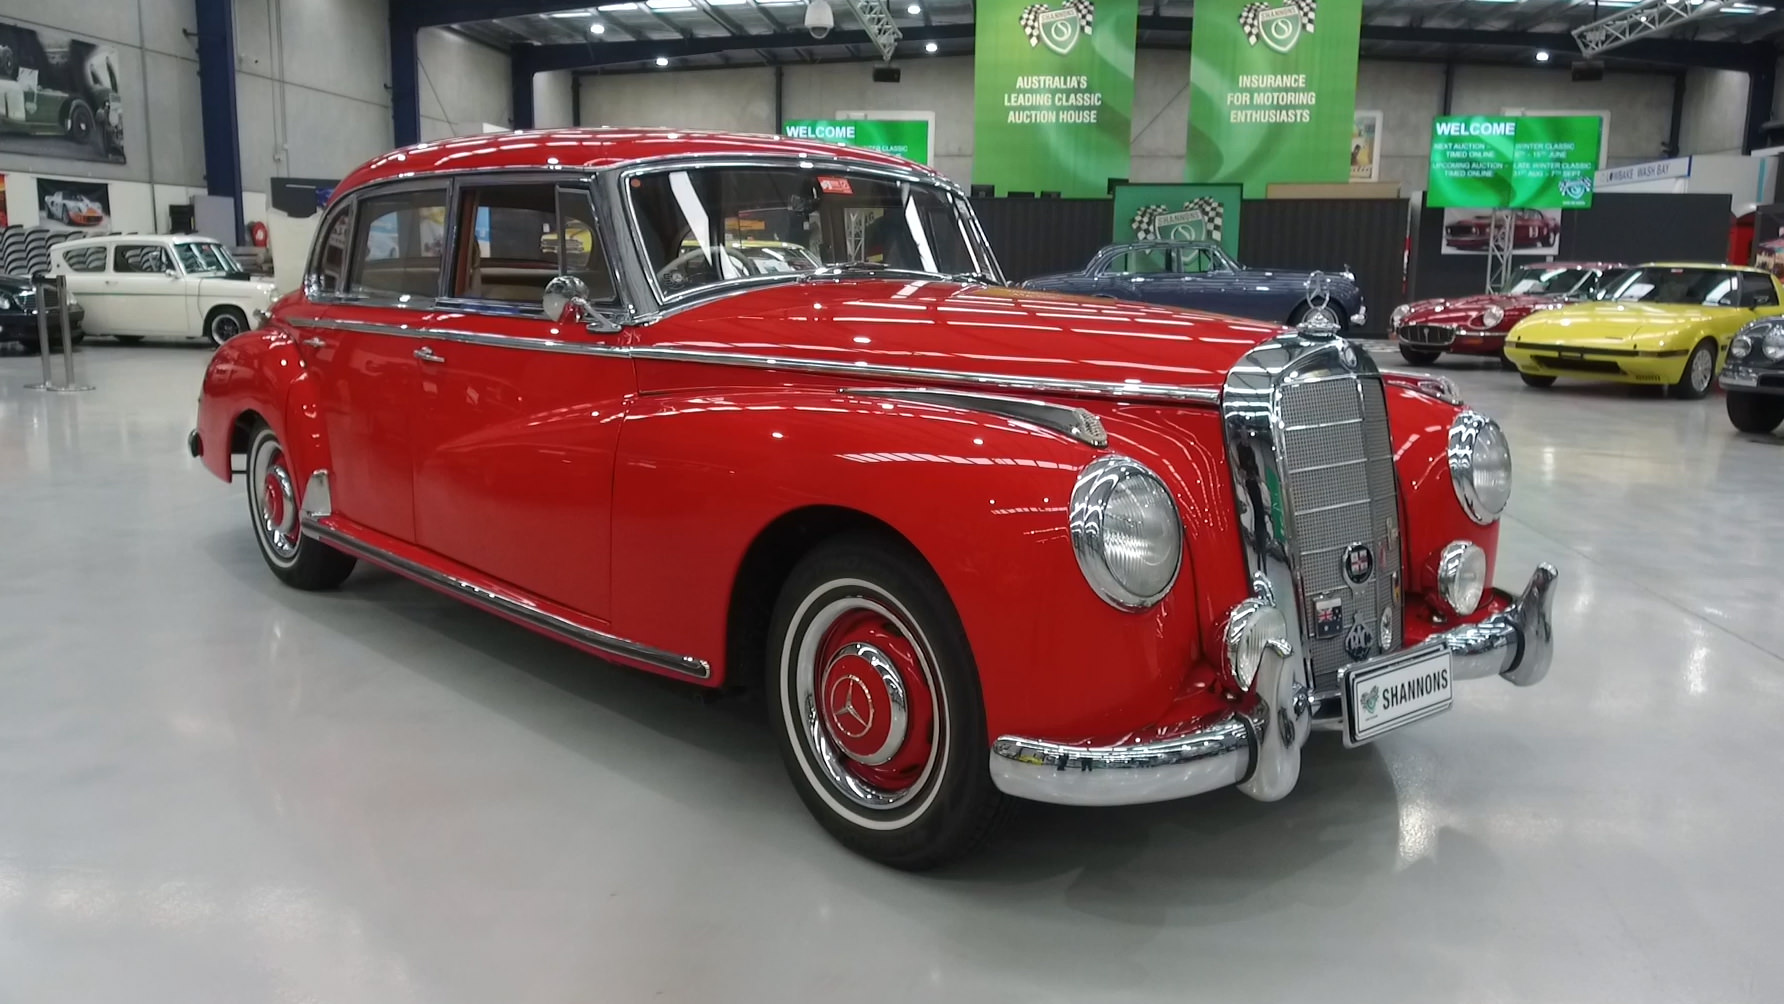 1954 Mercedes-Benz 300B Saloon - 2021 Shannons Winter Timed Online Auction